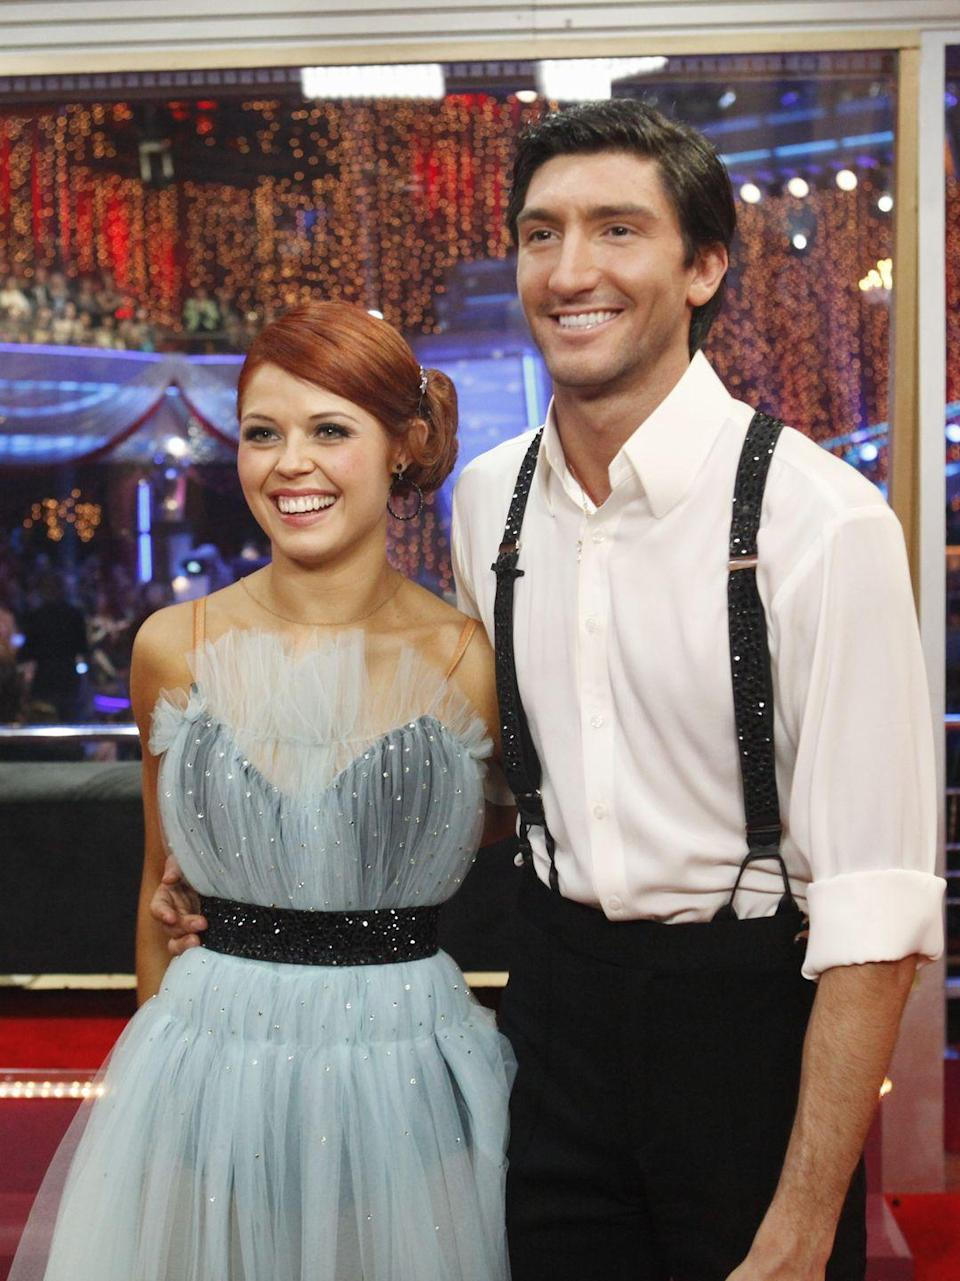 "<p>The Olympic skater broke two toes doing the jive in season 10, <em><a href=""https://www.nbcwashington.com/entertainment/television/Evan_Lysacek_Triumphs_Over_Broken_Toes_On__Dancing___Kate_Gosselin_Gets_Fierce.html"" rel=""nofollow noopener"" target=""_blank"" data-ylk=""slk:NBC Washington"" class=""link rapid-noclick-resp"">NBC Washington</a></em> reported. That wasn't the end of his injuries, he also suffered a mild concussion while training. Evan continued dancing and touring with the <em>Stars on Ice</em> show through the pain.</p>"